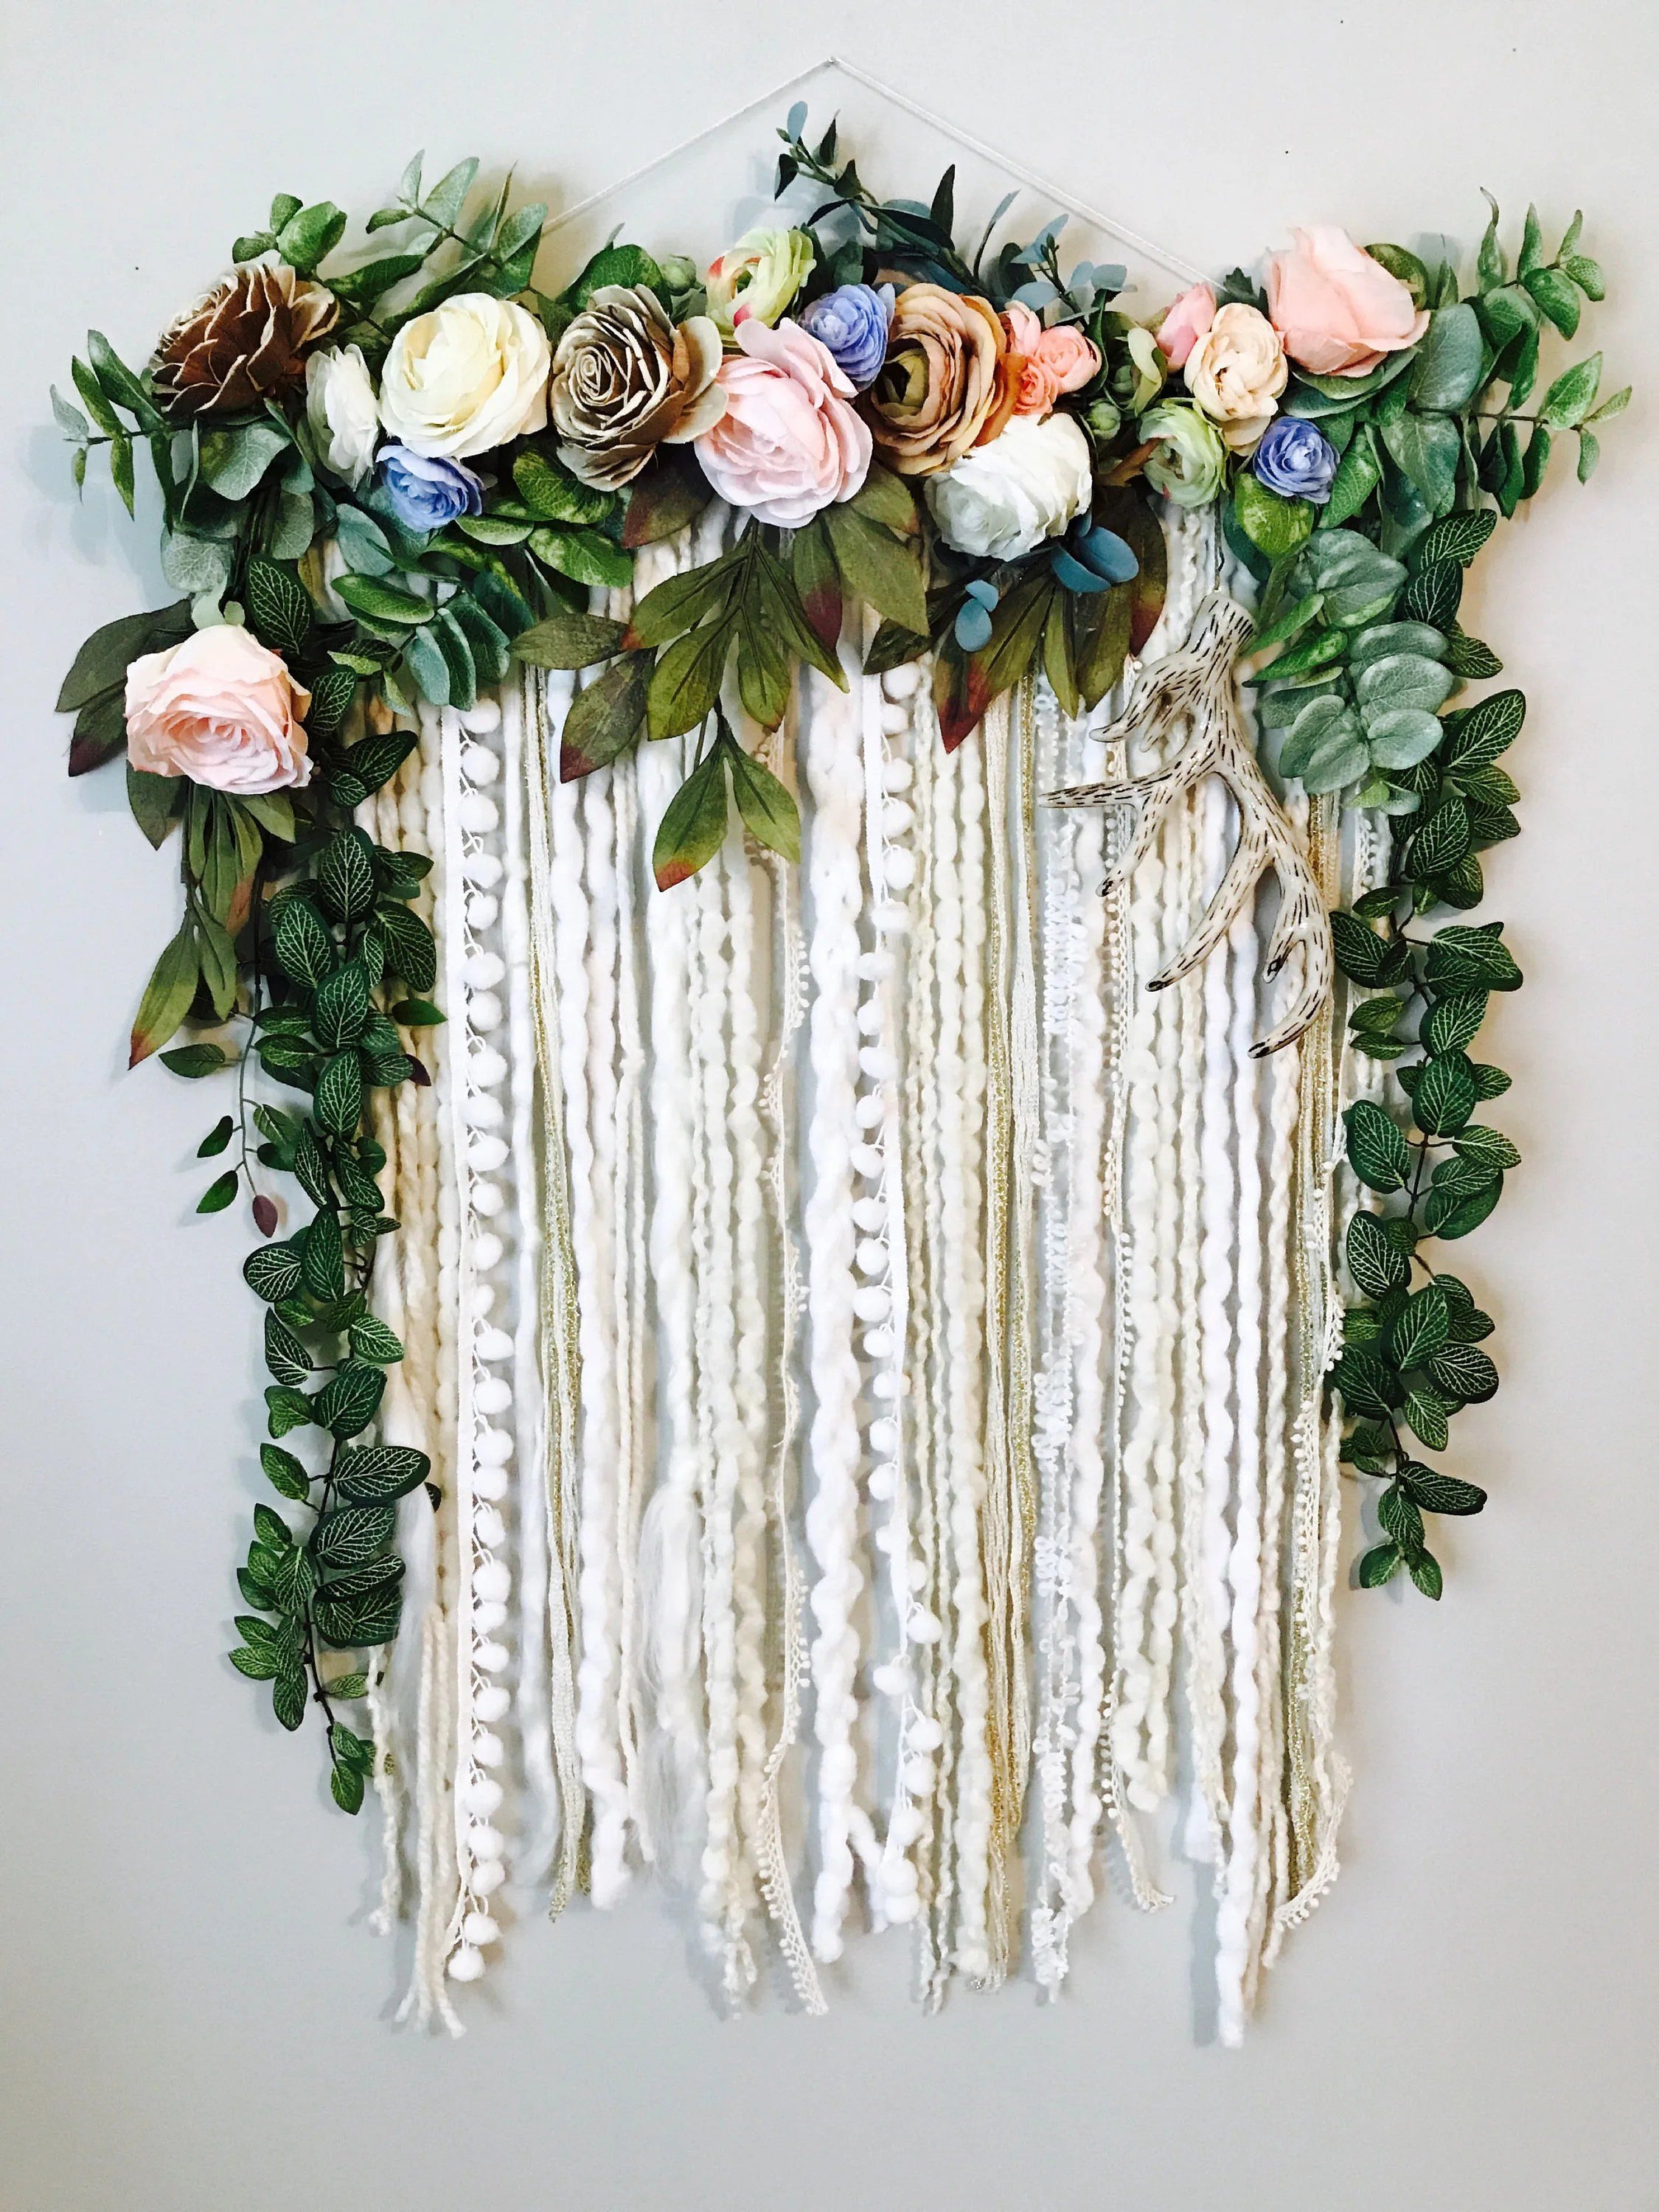 Wall Hanging Floral Wall Hanging Flower Wall Art Large Wall on Hanging Wall Sconces For Flowers id=89281